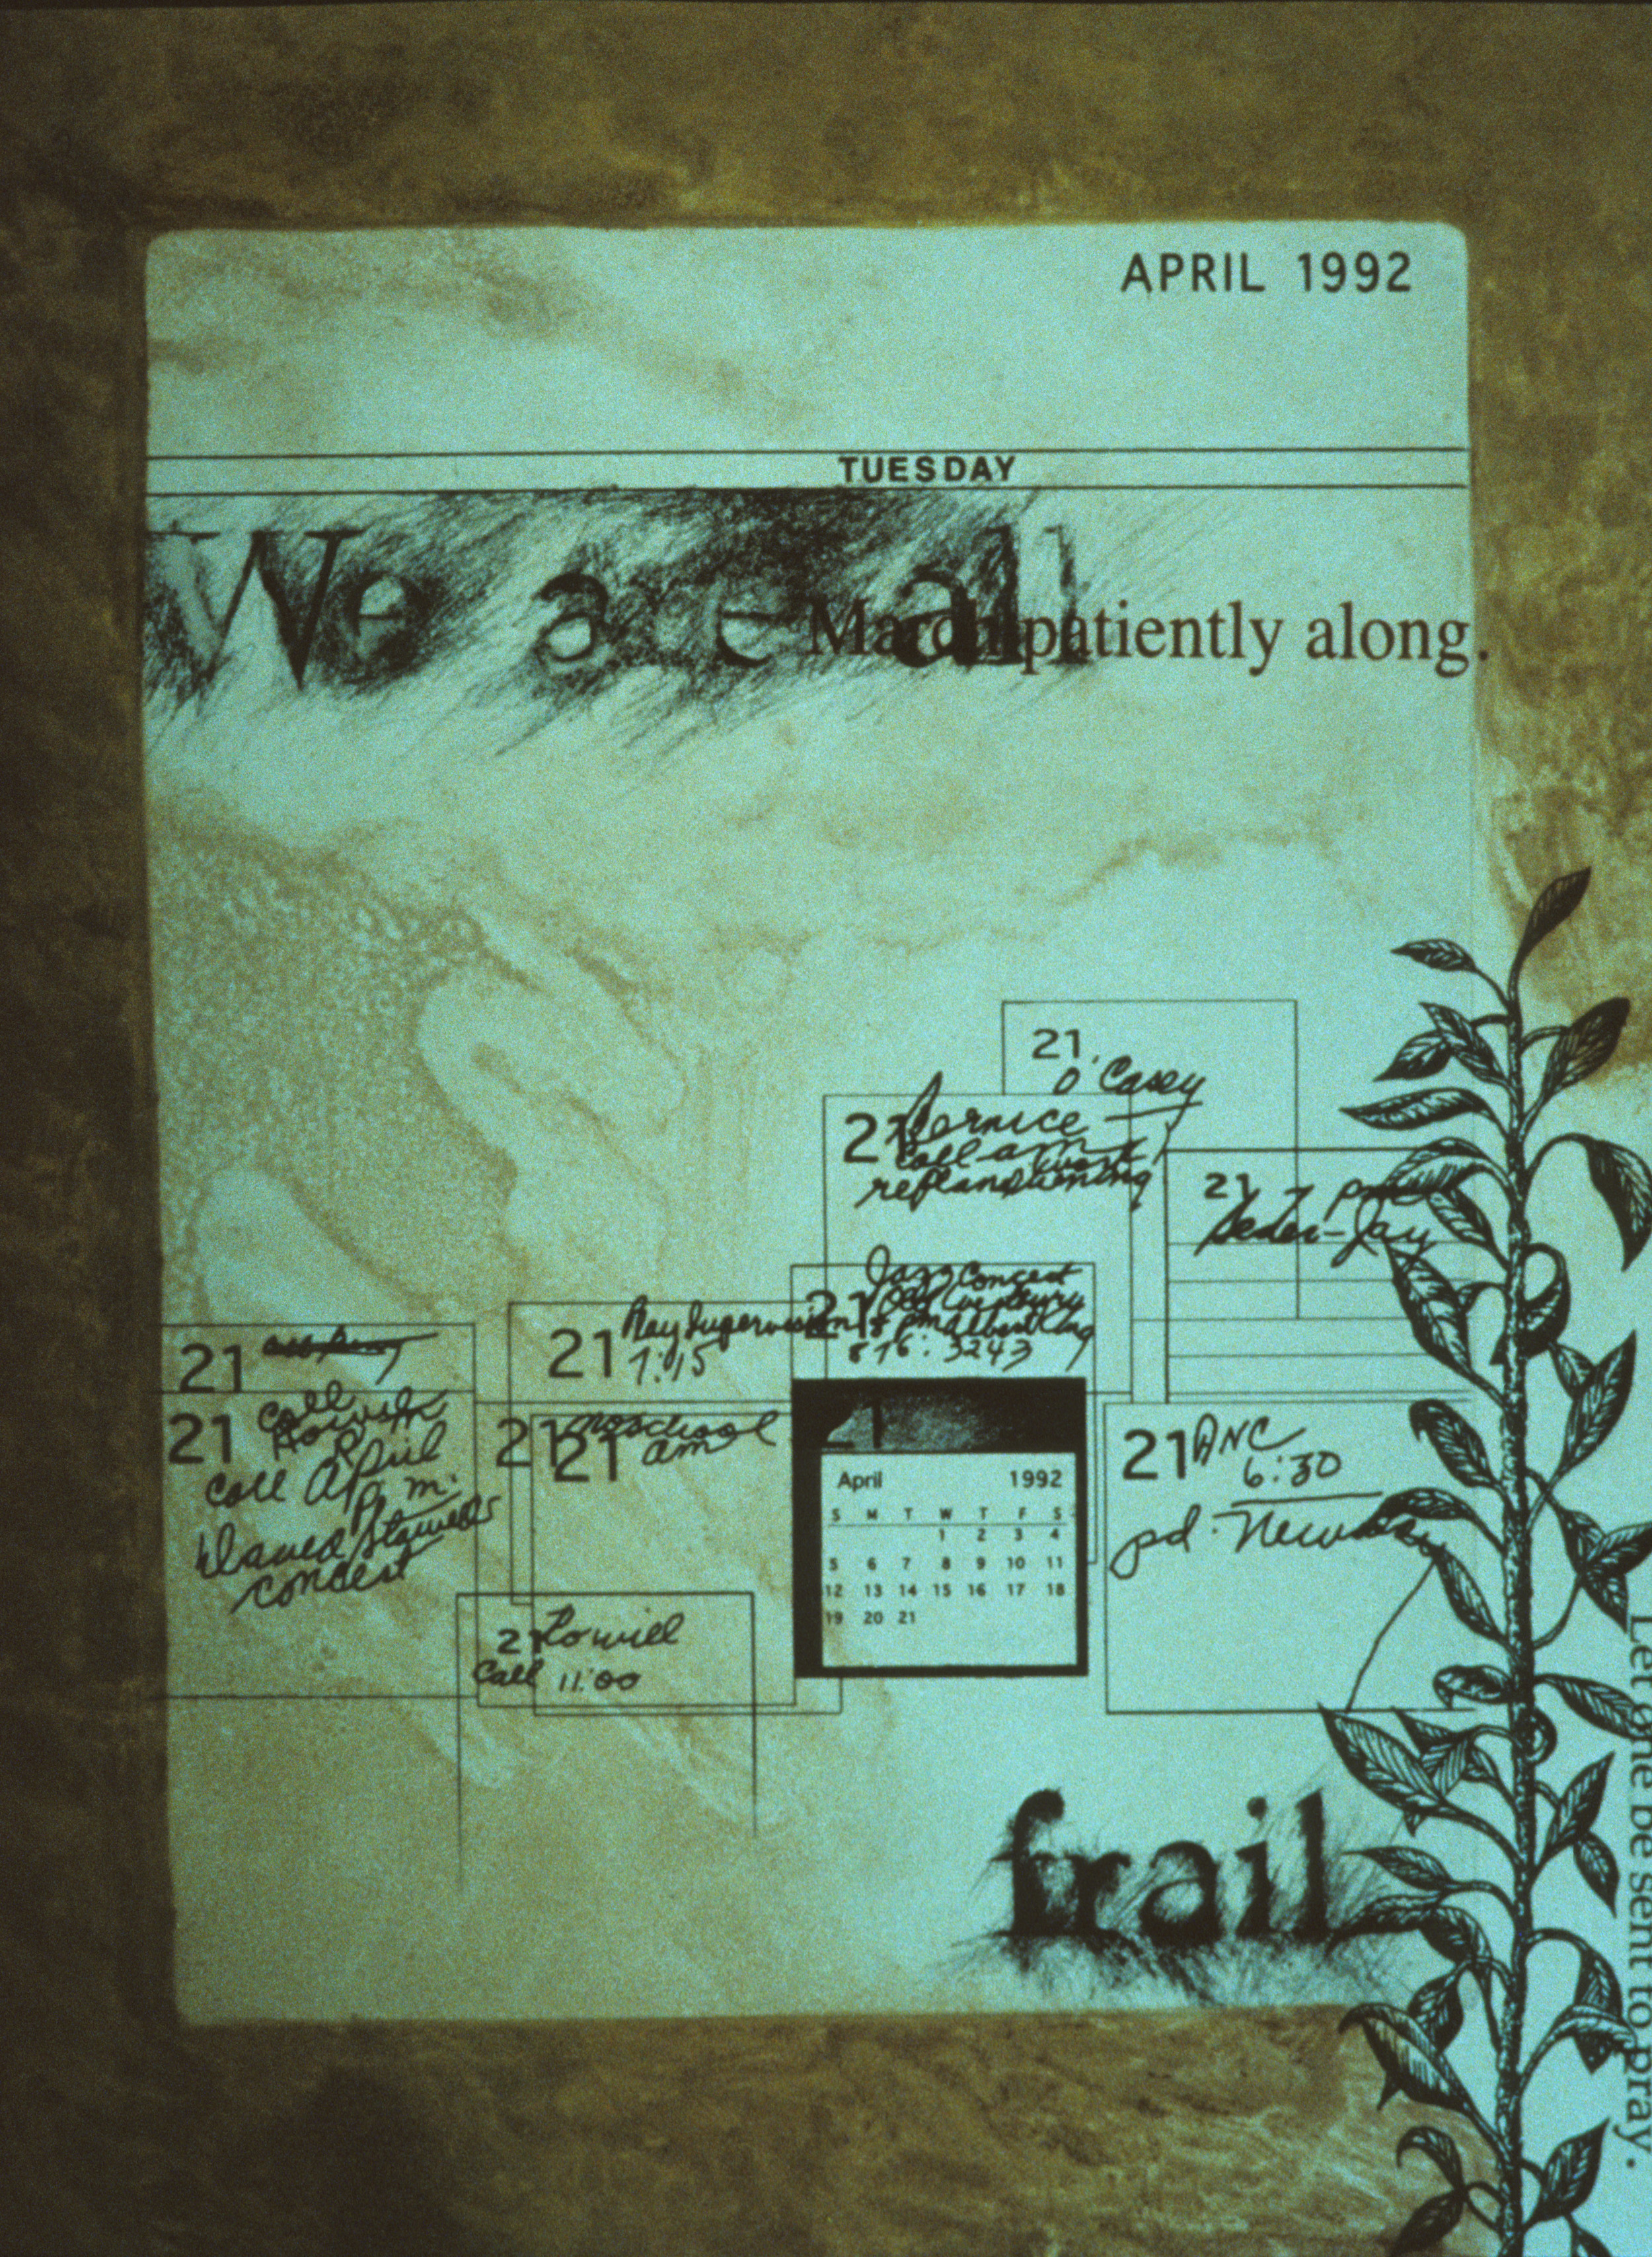 April 21: We Are All Frail